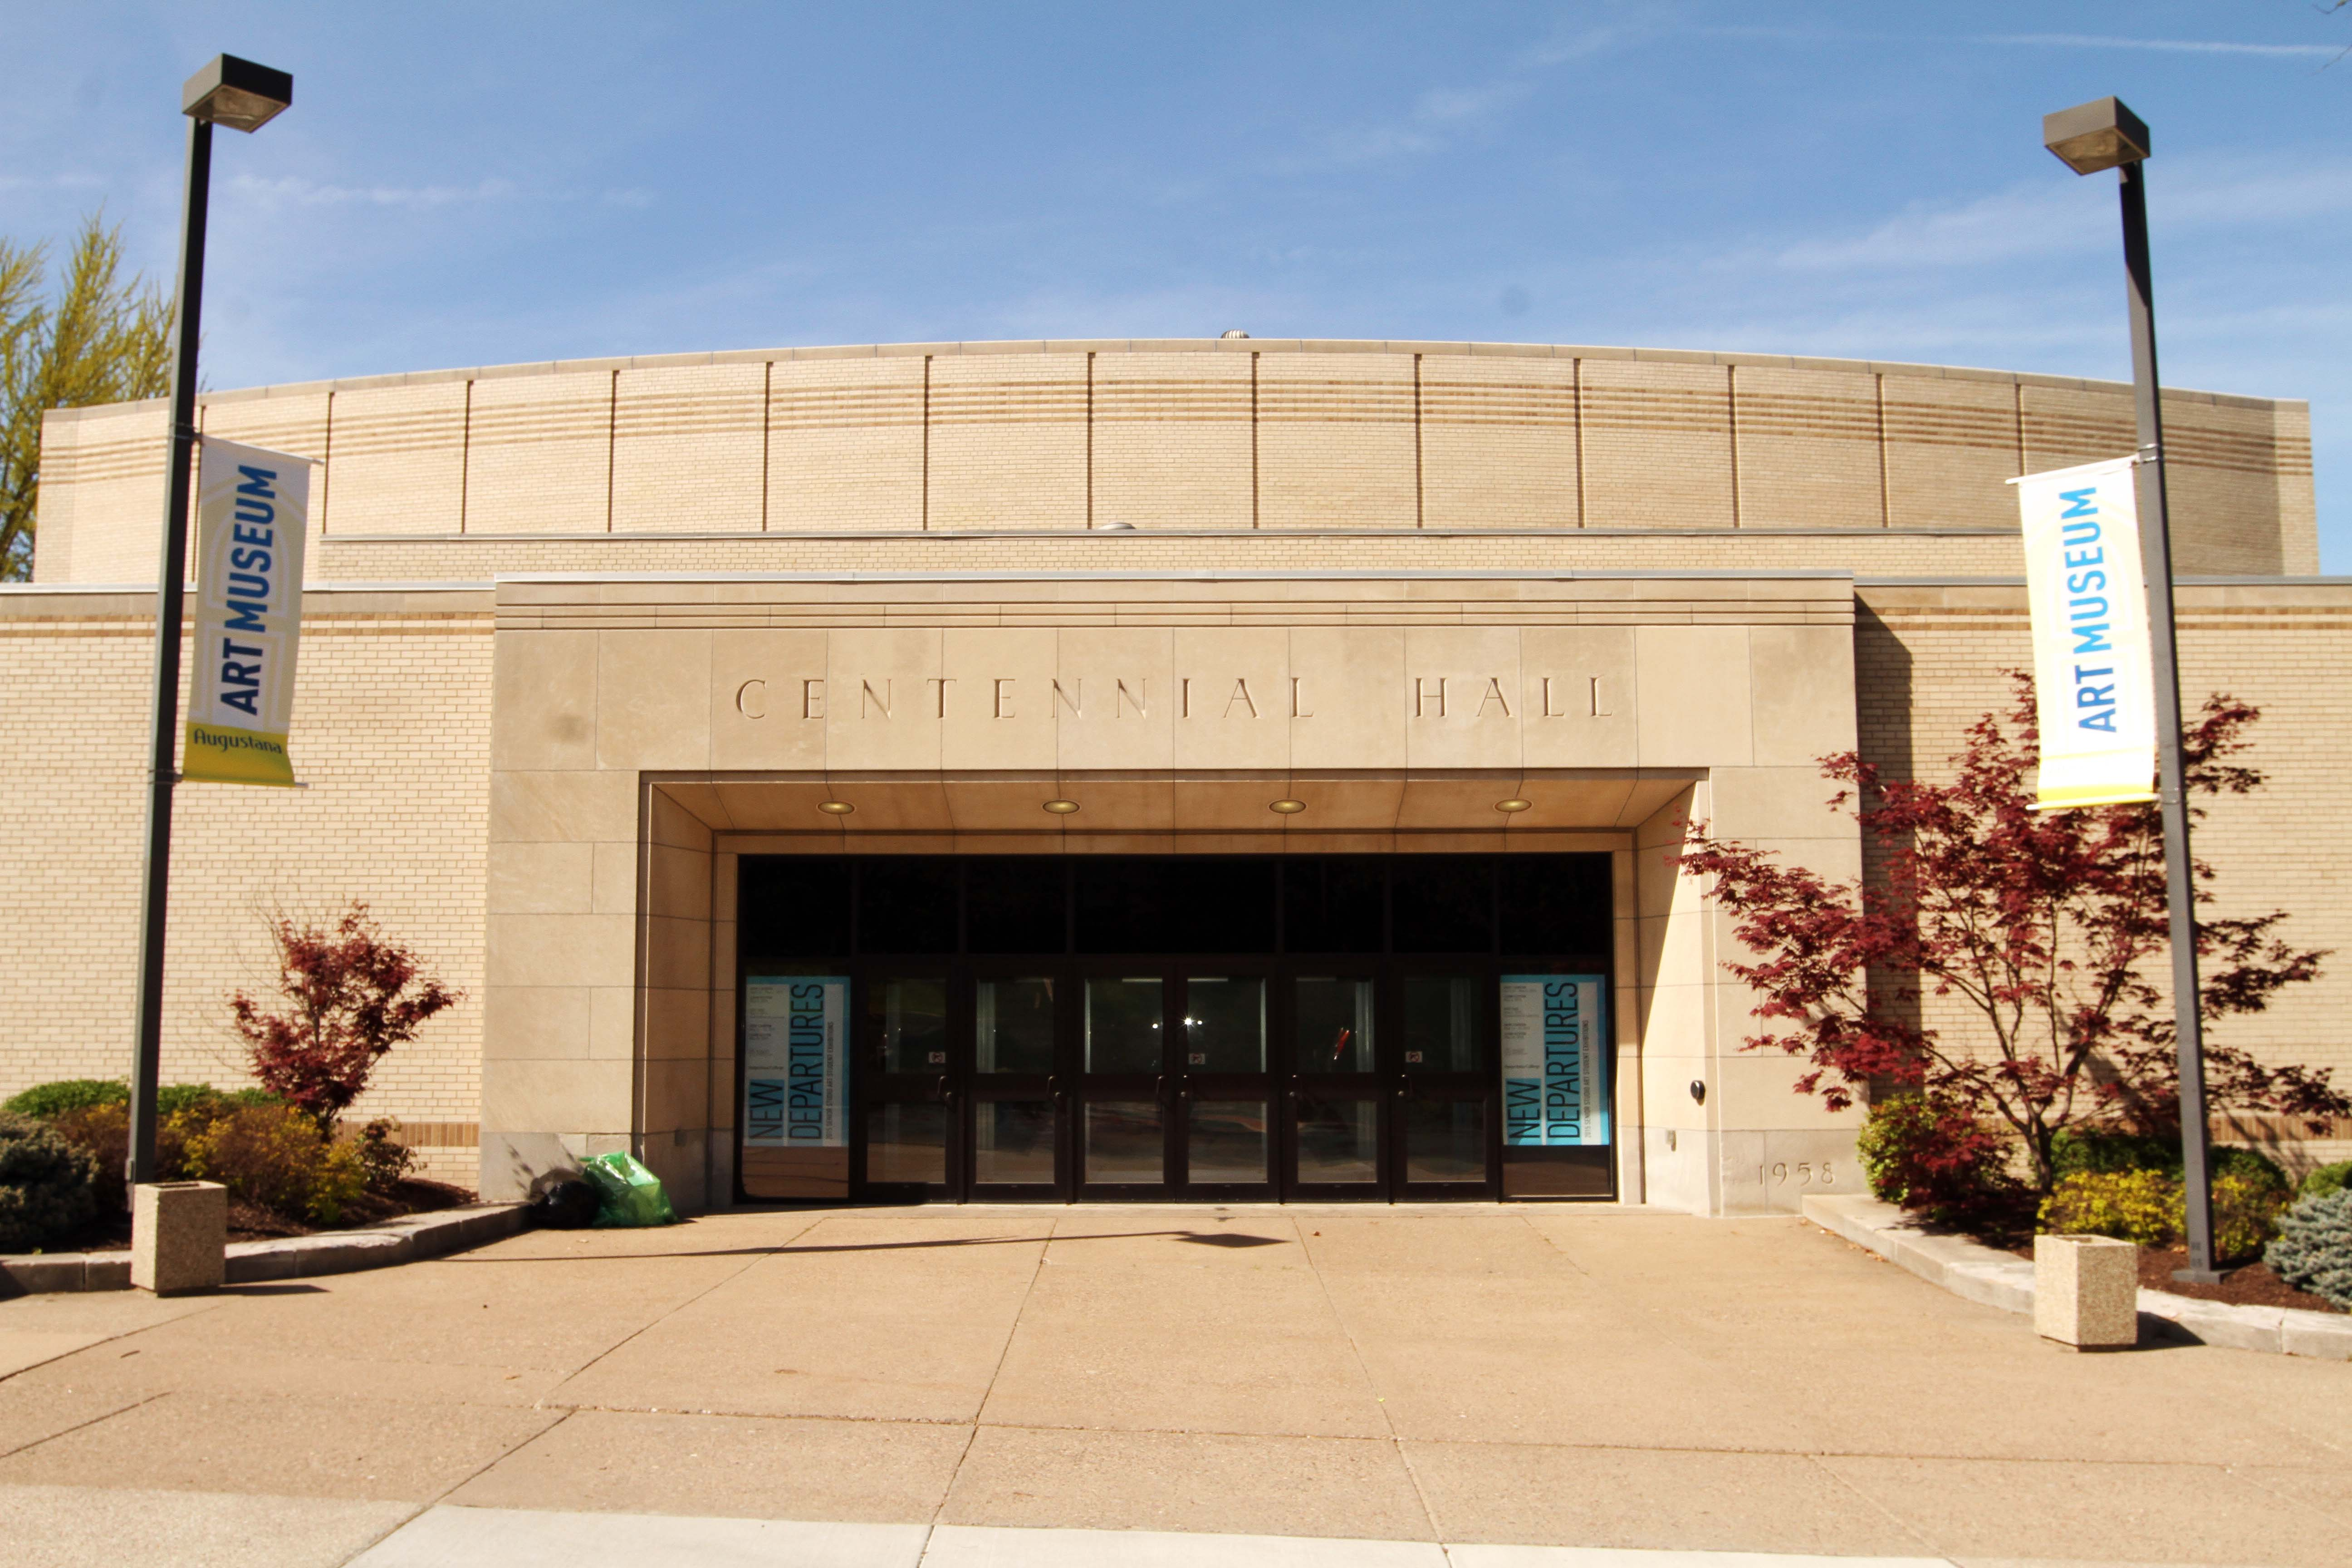 illinois state university application essay Students currently attending illinois state university must: double-spaced essay complete an illinois state university admission application.